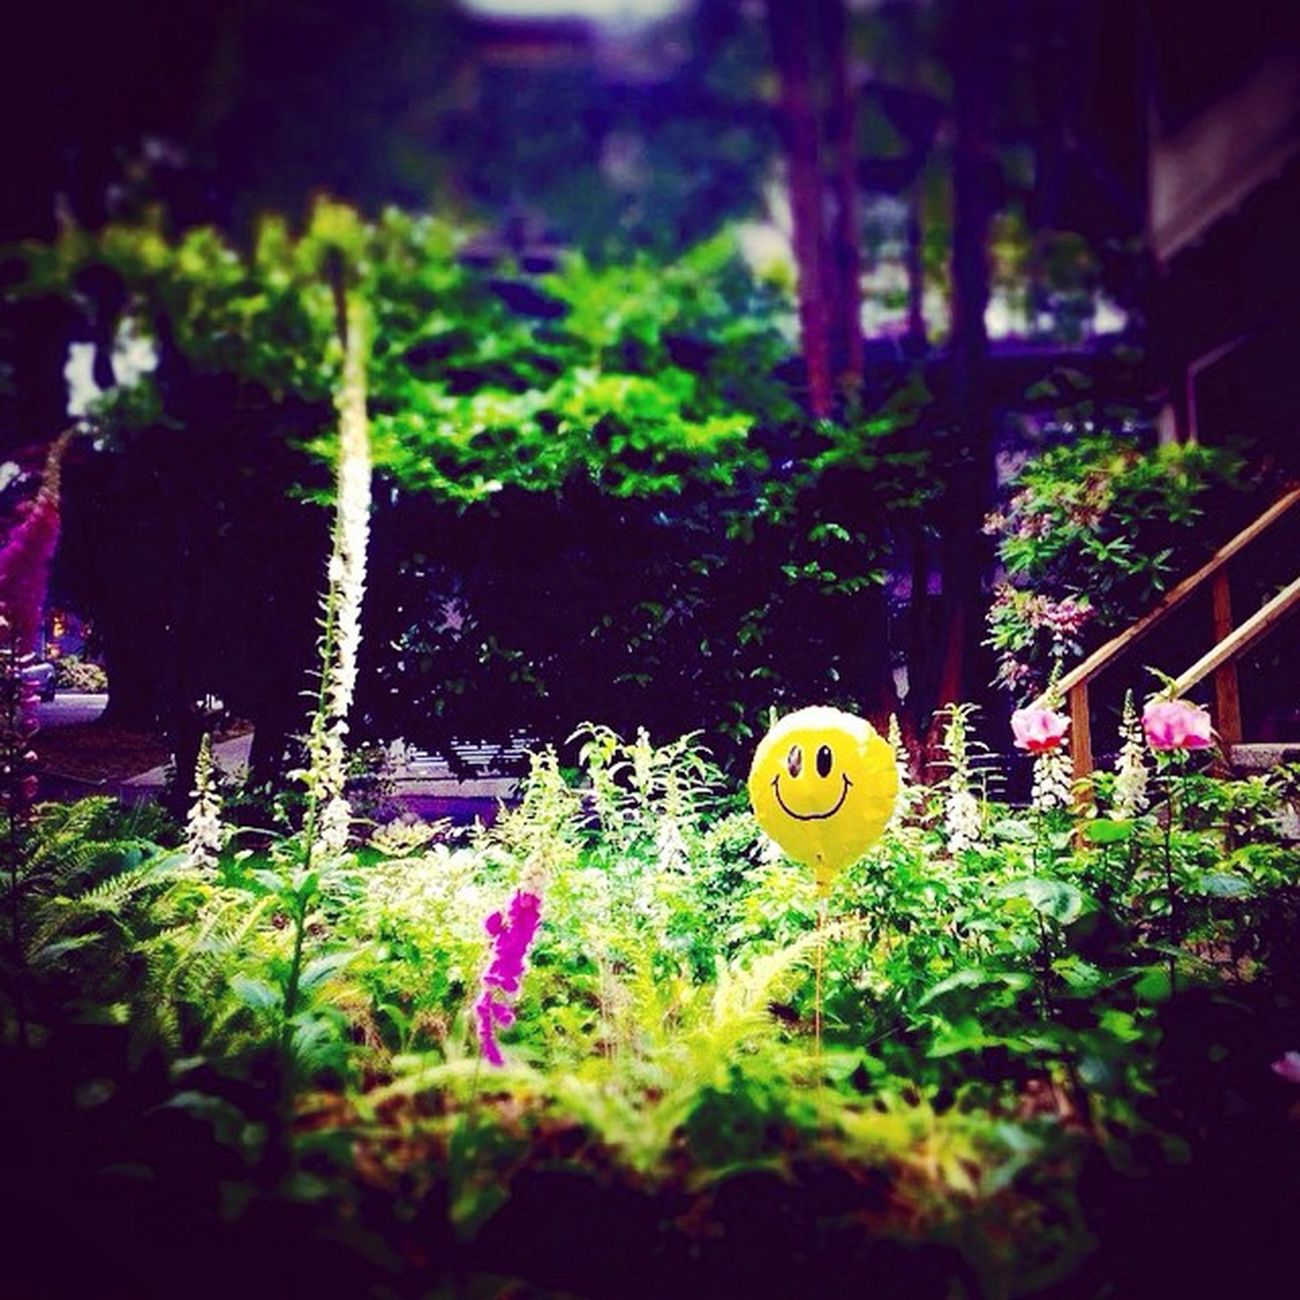 Incognito Rookie Jellybus Soullessphotography Phoneography Instagram EyeEm Vancouver Canada